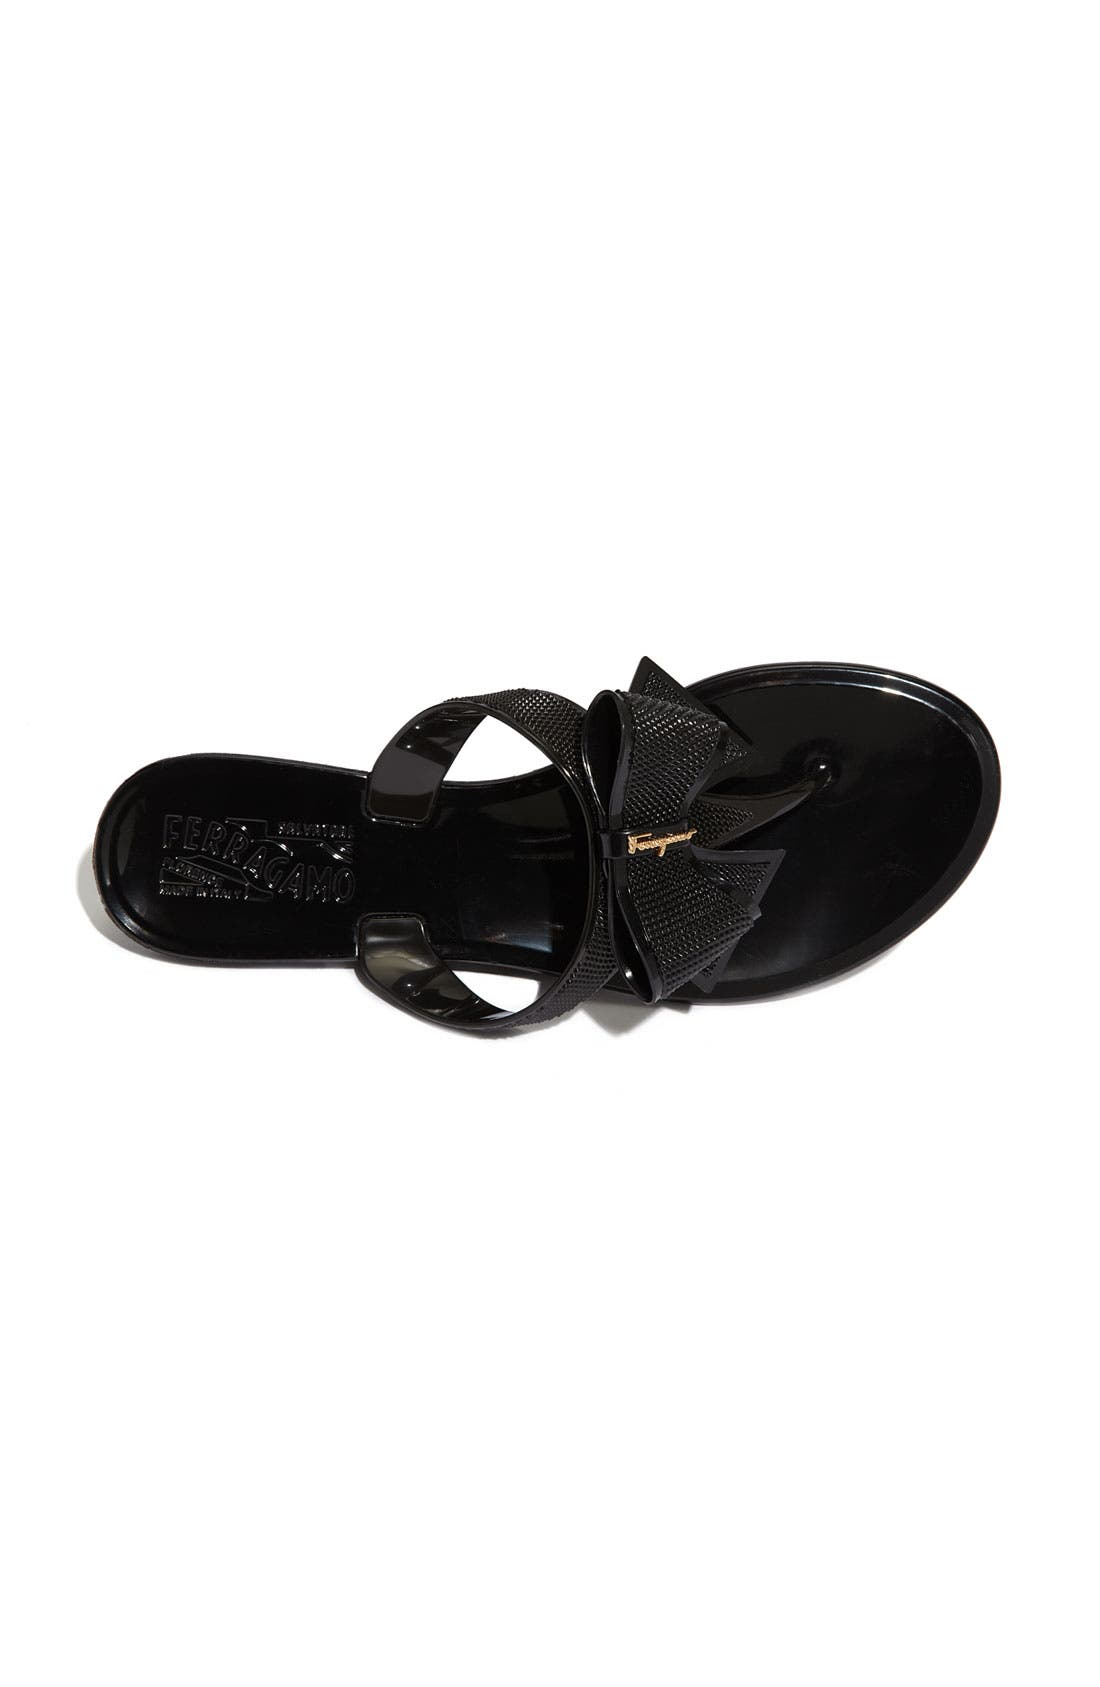 Alternate Image 3  - Salvatore Ferragamo 'Bali' Sandal